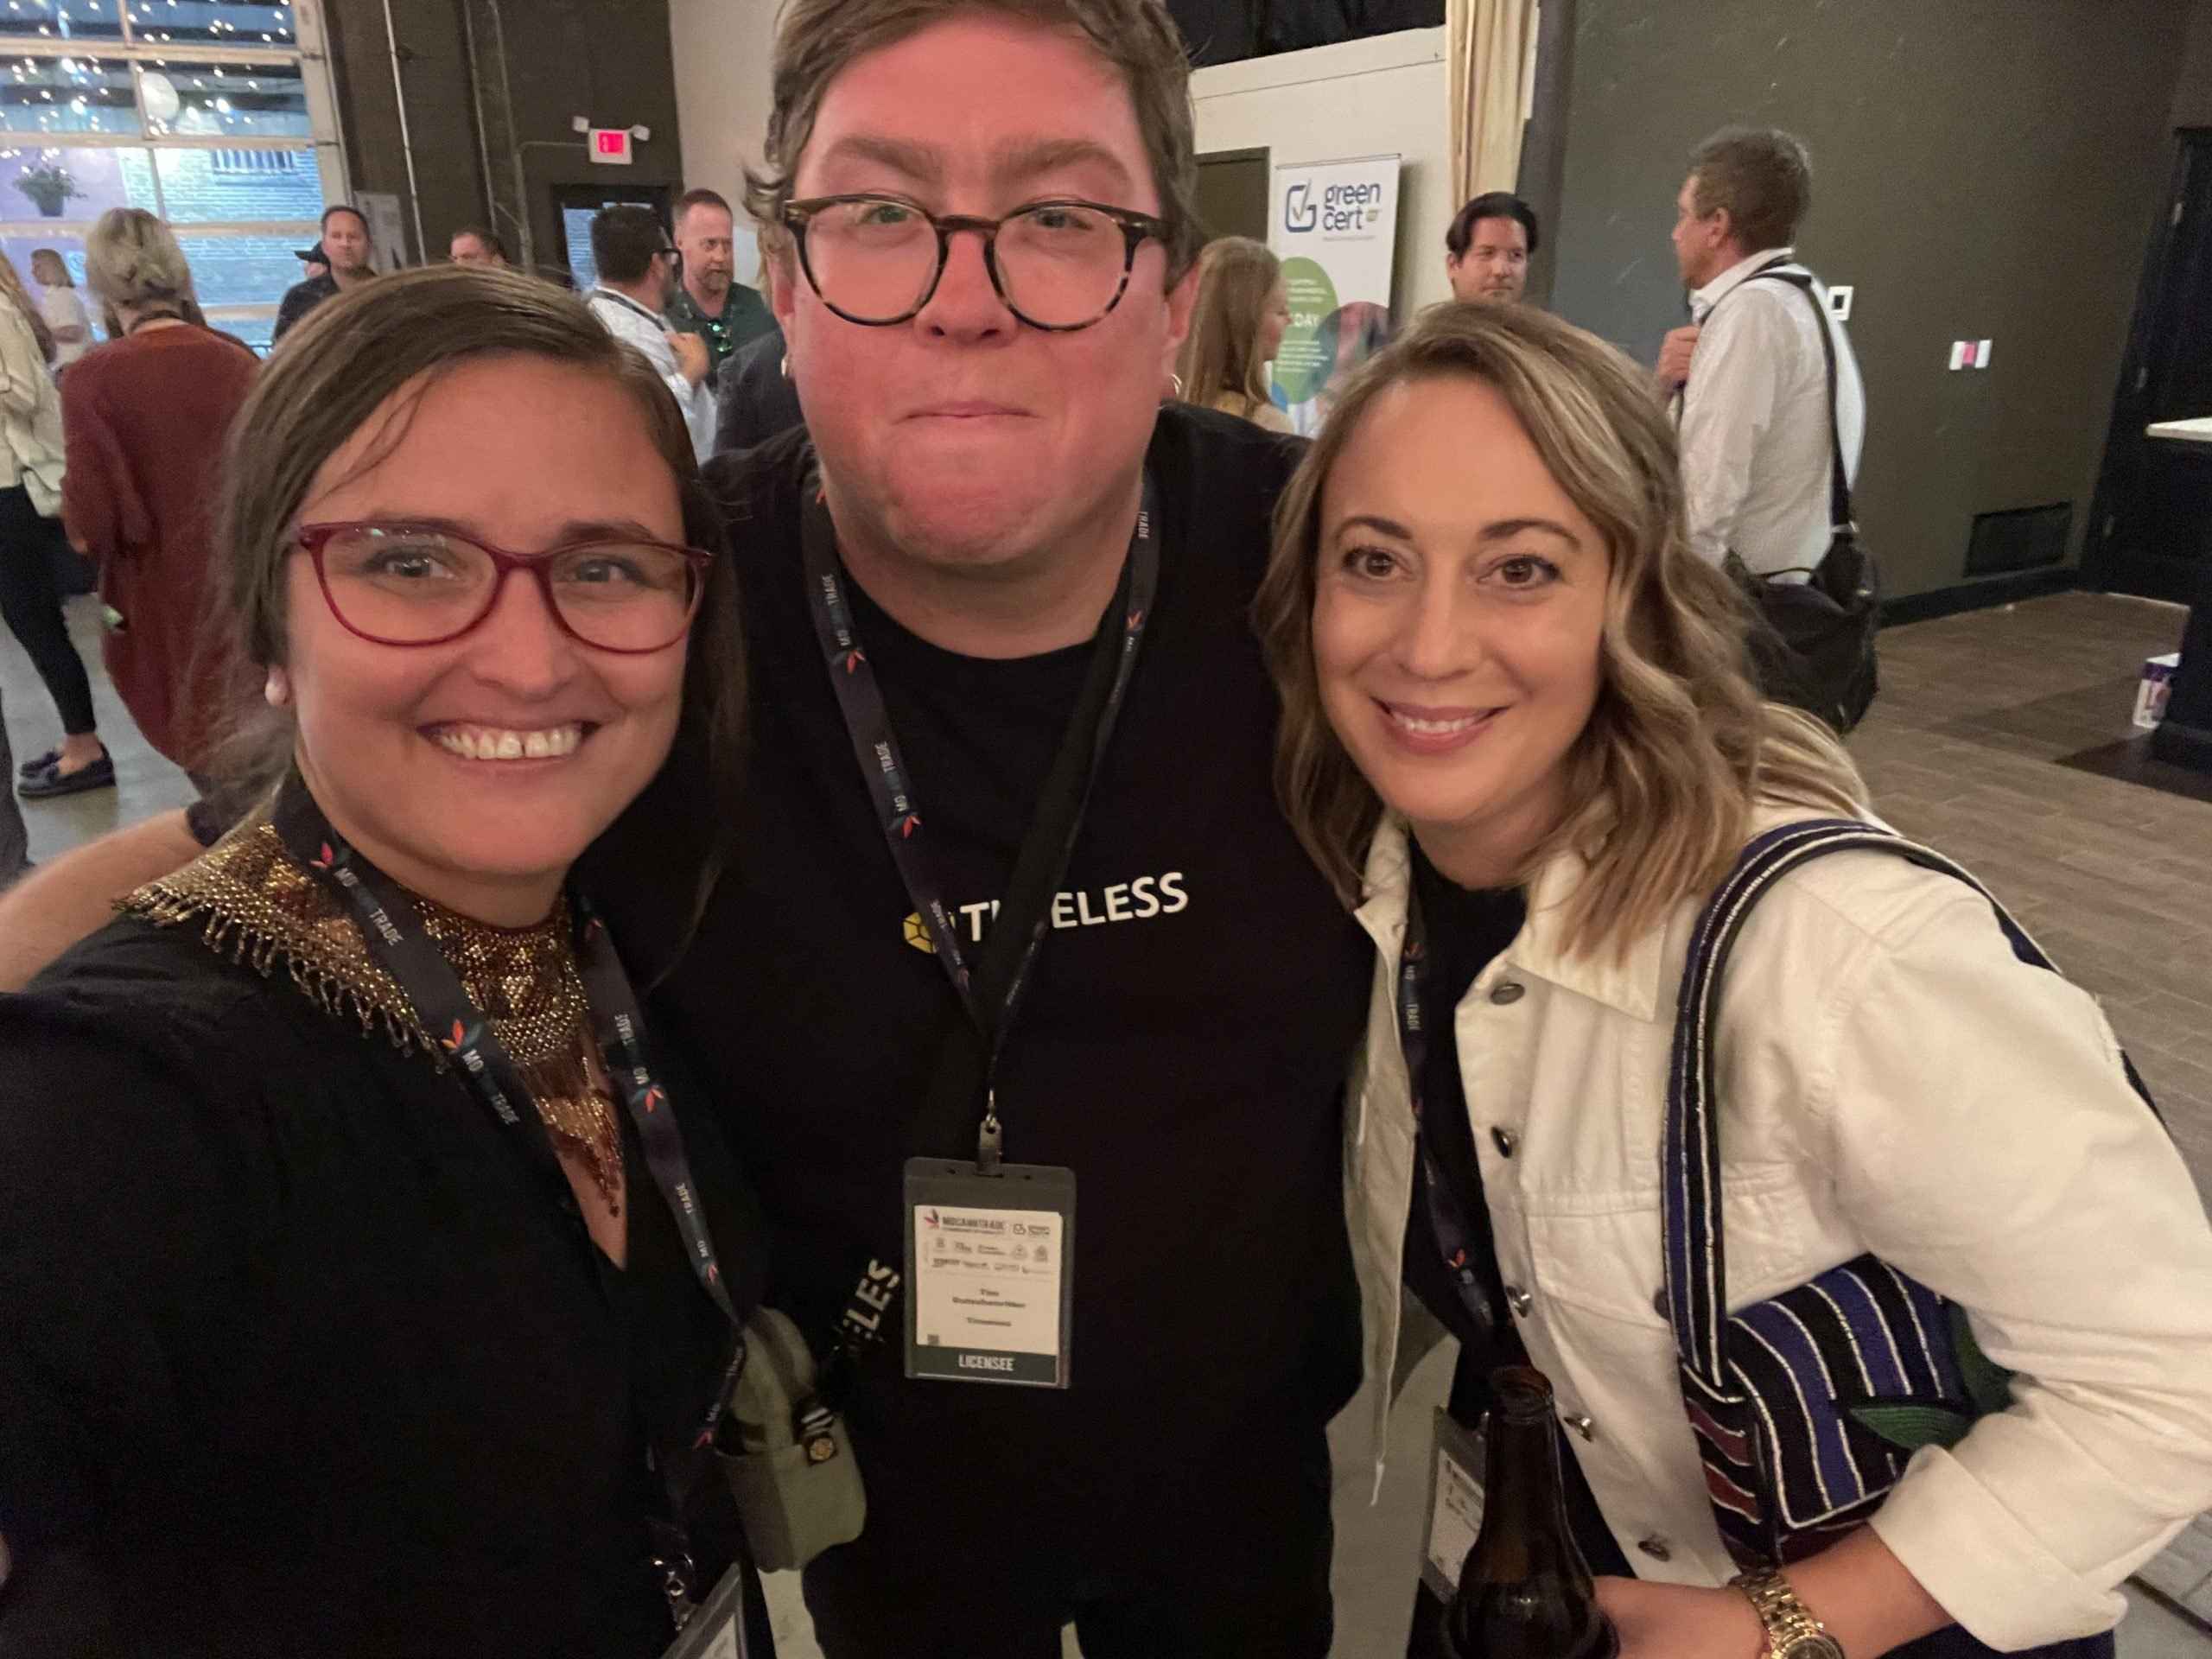 Karla Deel, Tim Gutschenritter --Missouri Manager at Timeless, and Mary Kate Black